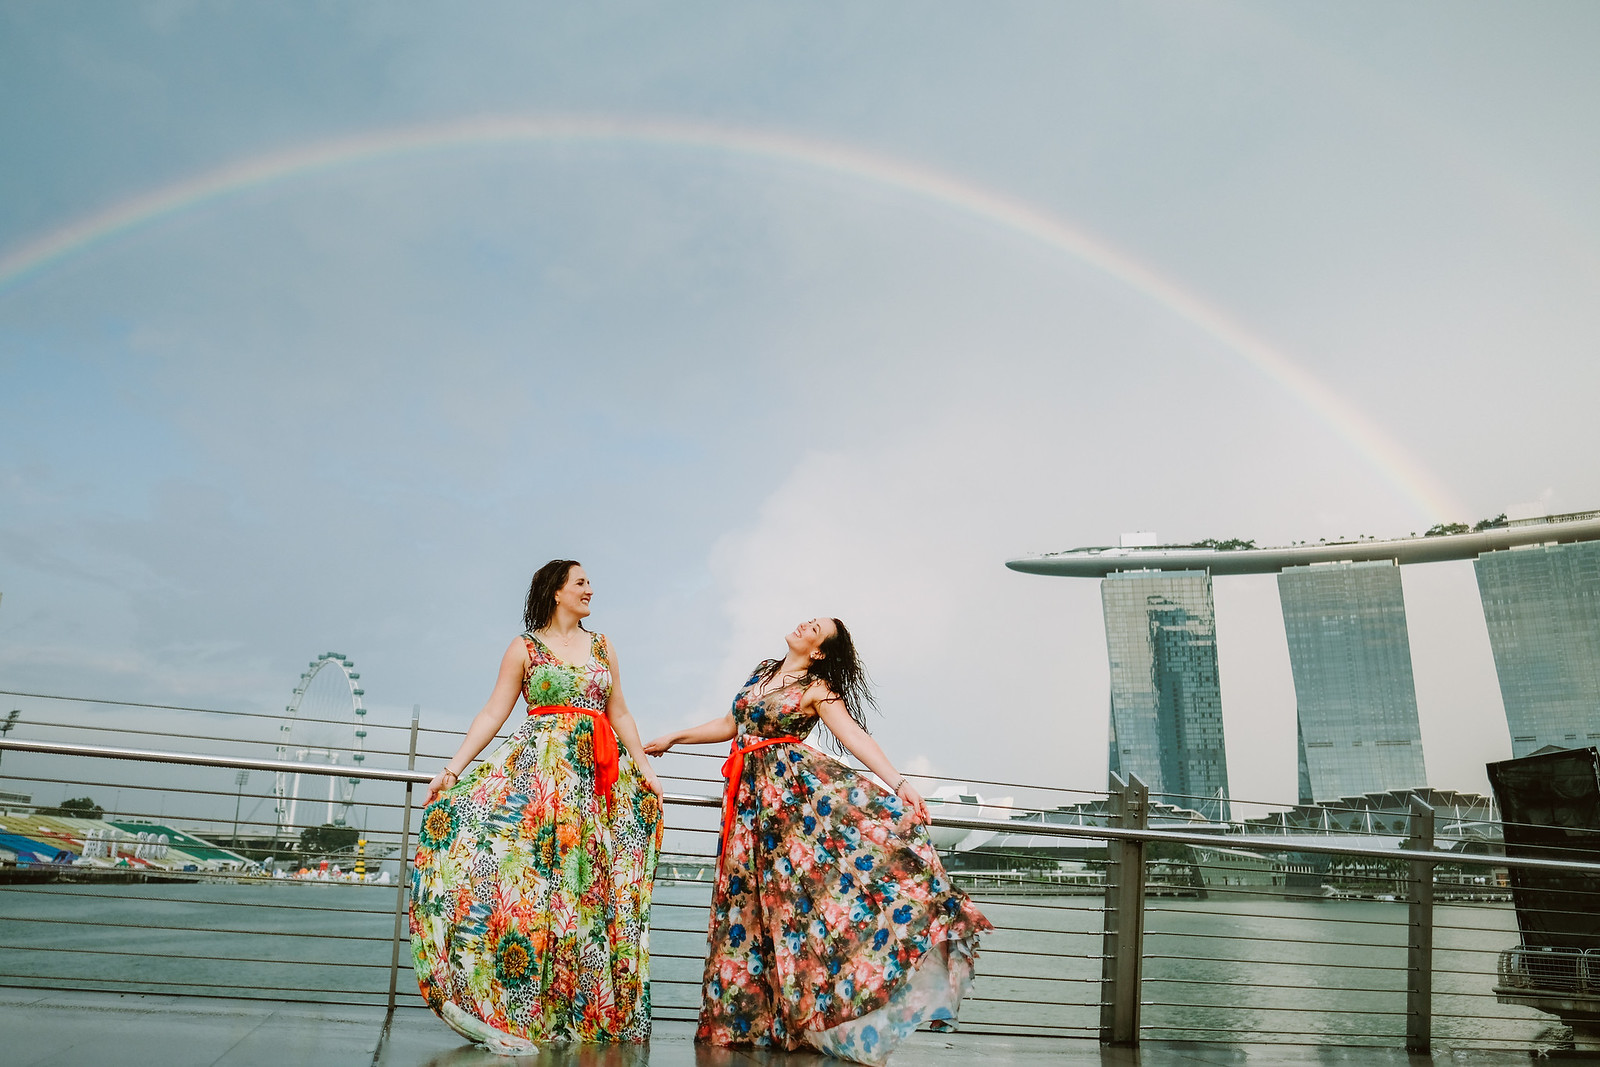 Flytographer: Kelly in Singapore